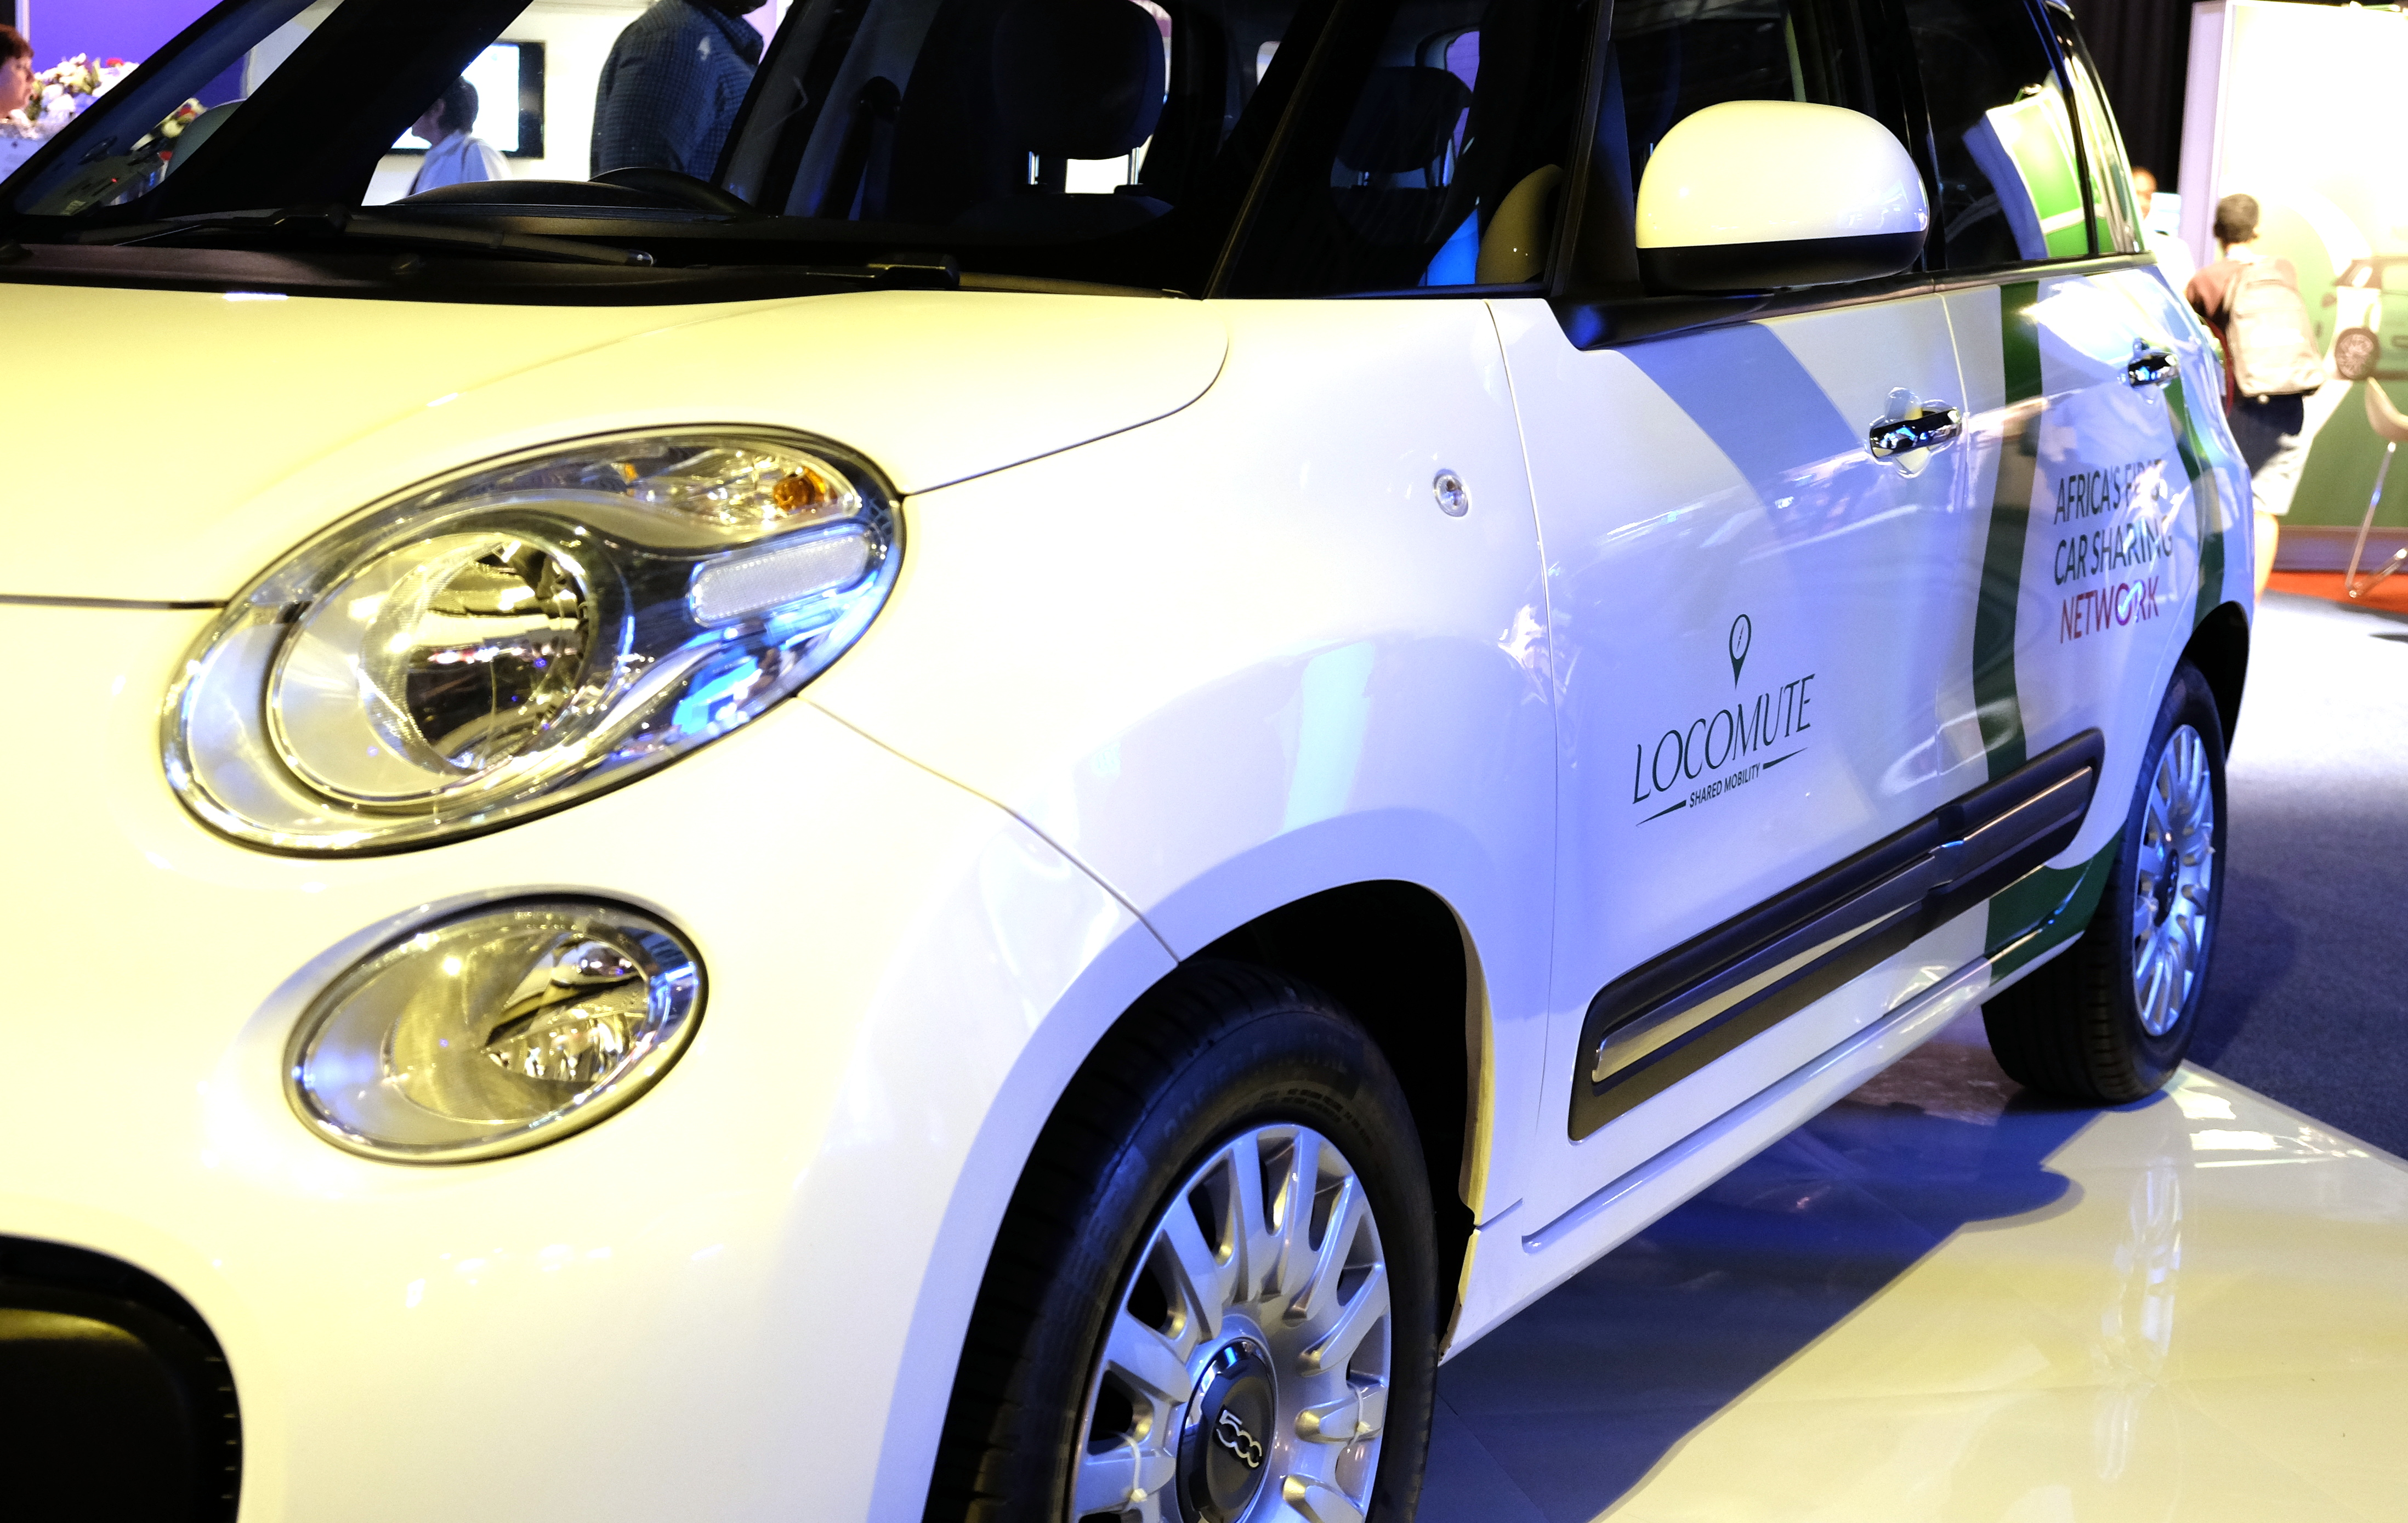 Car sharing network Locomute plans Durban expansion - htxt africa